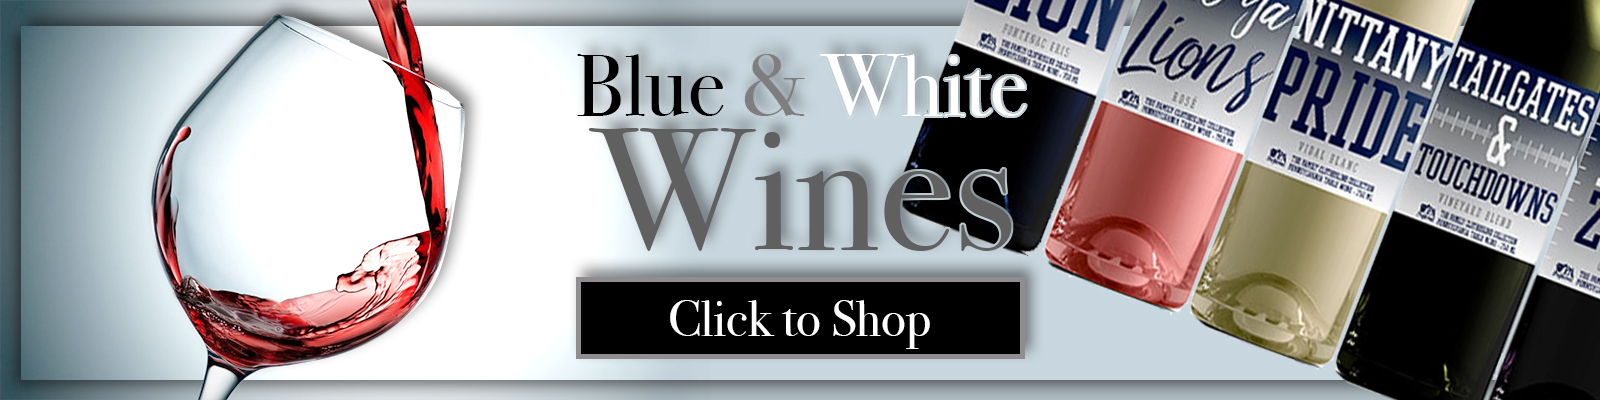 Click to Shop Our Collection of Blue and White wines